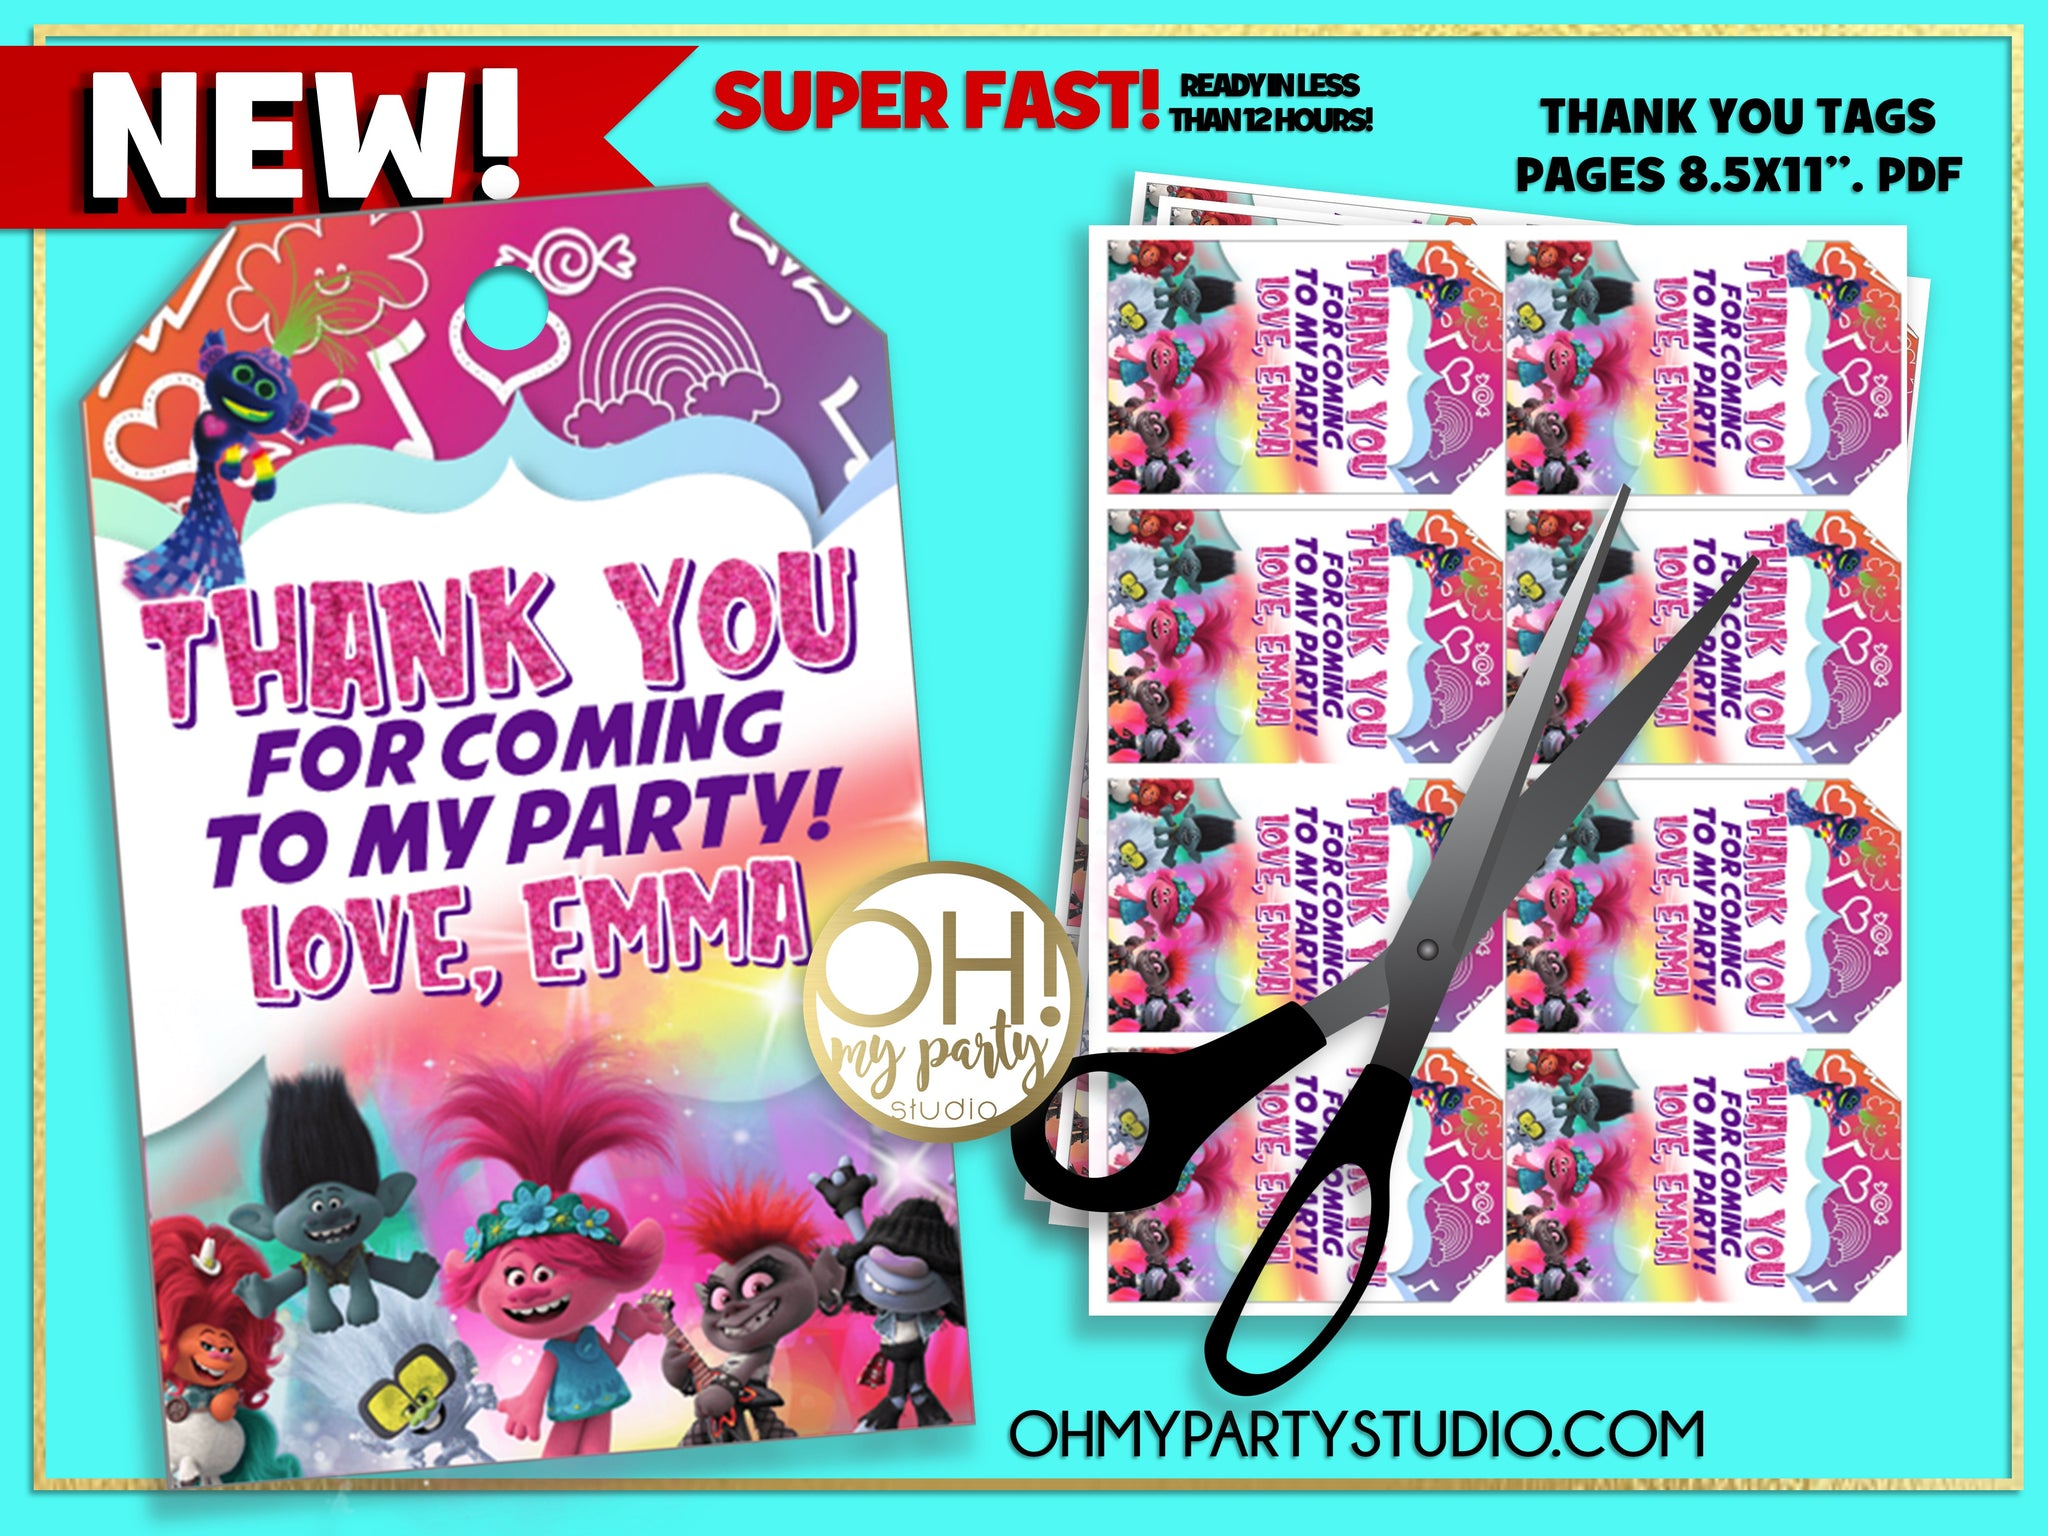 TROLLS 2 THANK YOU TAGS, TROLLS 2 BIRTHDAY PARTY, TROLLS WORLD TOUR THANK YOU TAGS, TROLLS WORLD TOUR PARTY IDEAS, TROLLS WORLD TOUR FAVORS, TROLLS WORLD TOUR PARTY SUPPLIES, TROLLS WORLD TOUR PARTY PRINTABLES, TROLLS WORLD TOUR THANK YOU, TROLLS WORLD TOUR TAGS, TROLLS 2 PARTY IDEAS, TROLLS 2 PARTY PRINTABLES, TROLLS 2 PARTY SUPPLIES